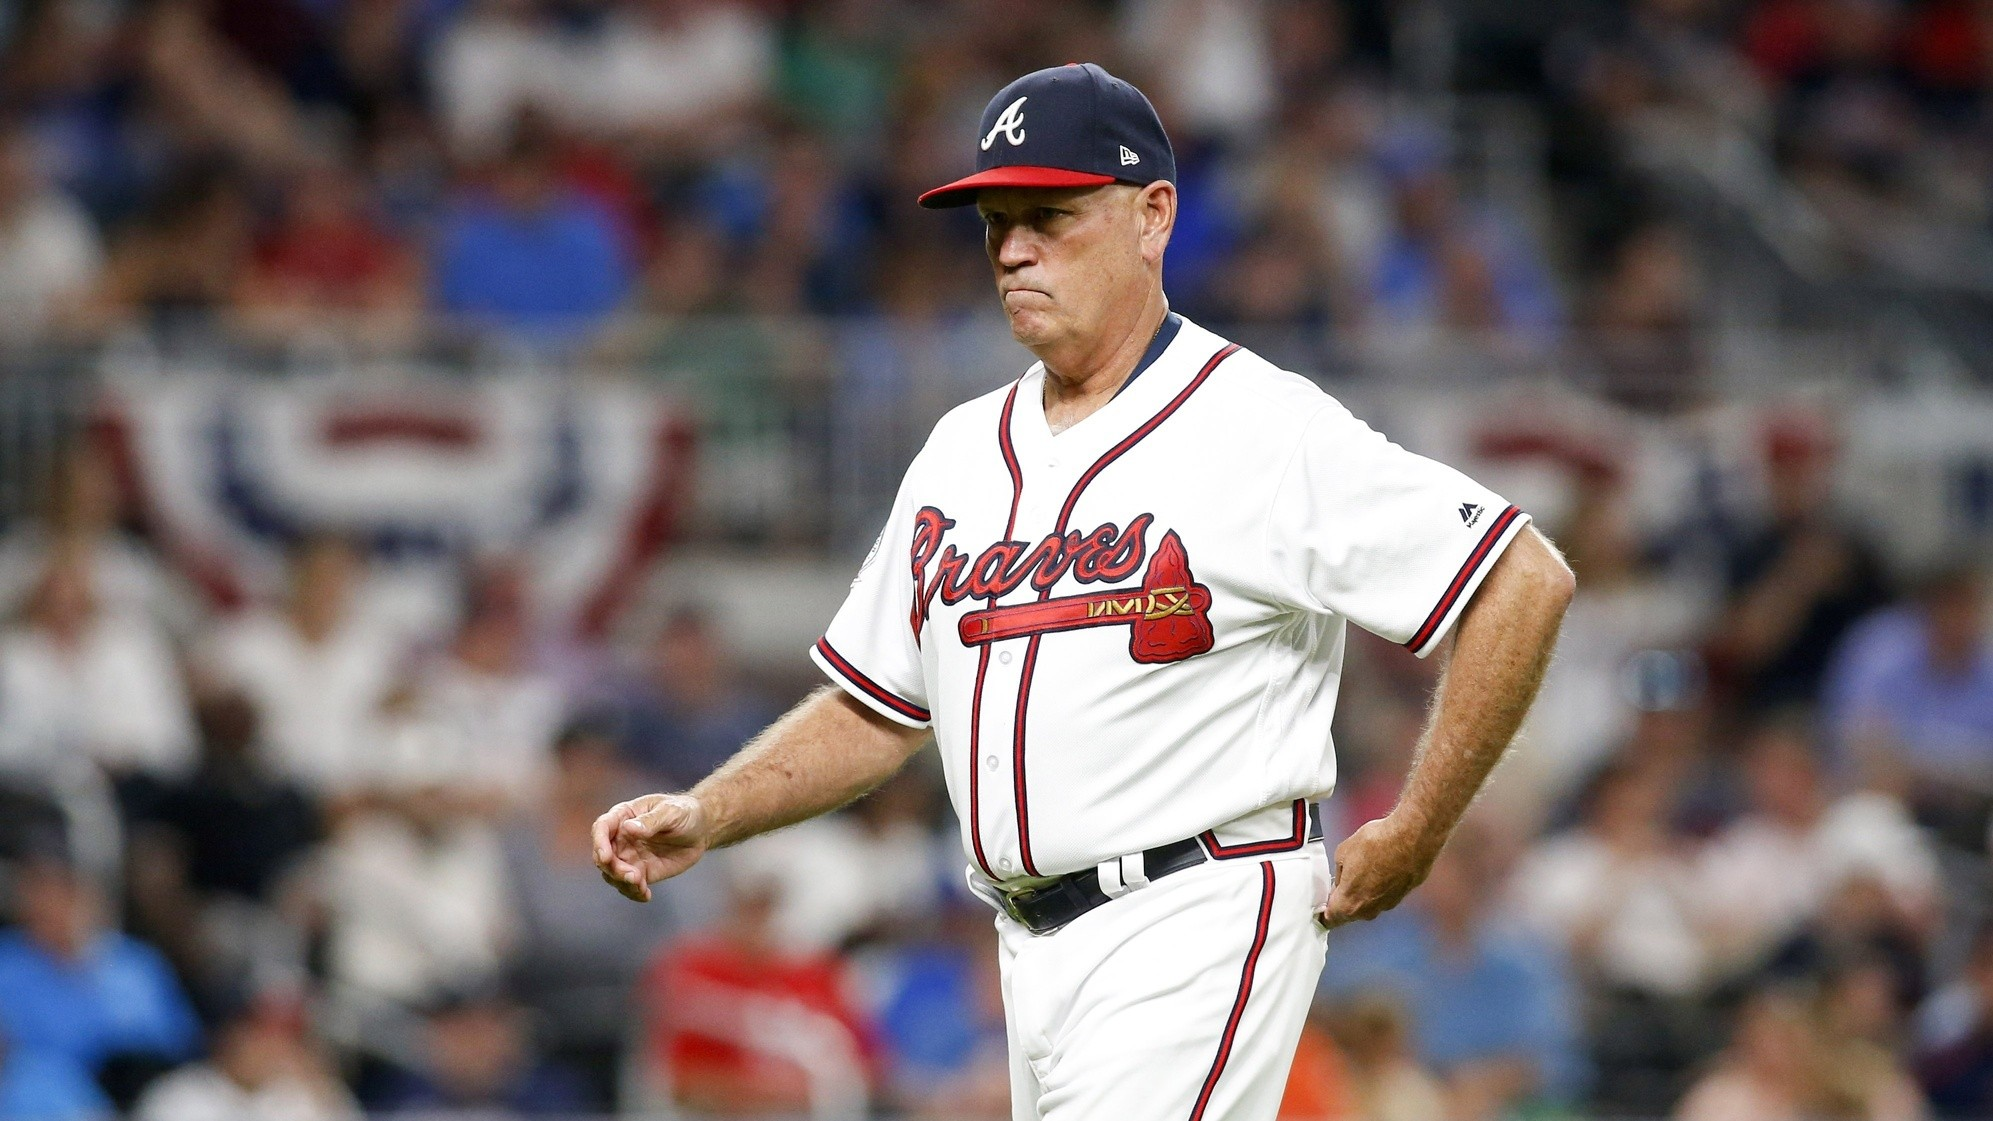 At 61, Braves Manager Brian Snitker Is the Oldest Rookie in Baseball